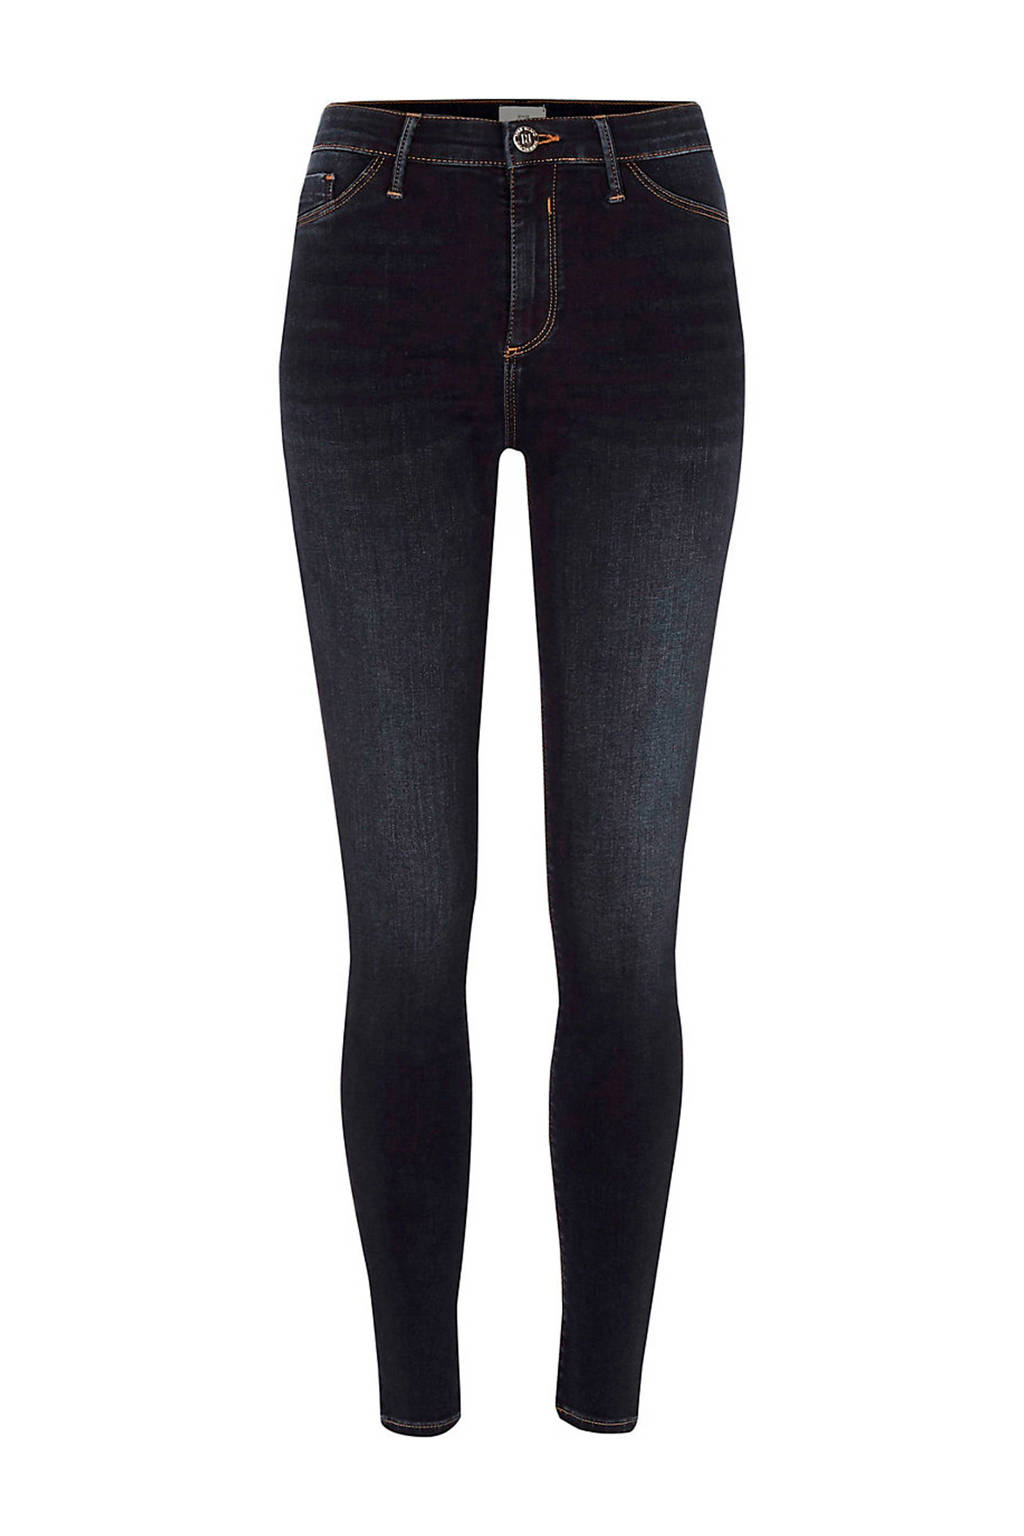 River Island skinny jeans Molly, DARK AUTH